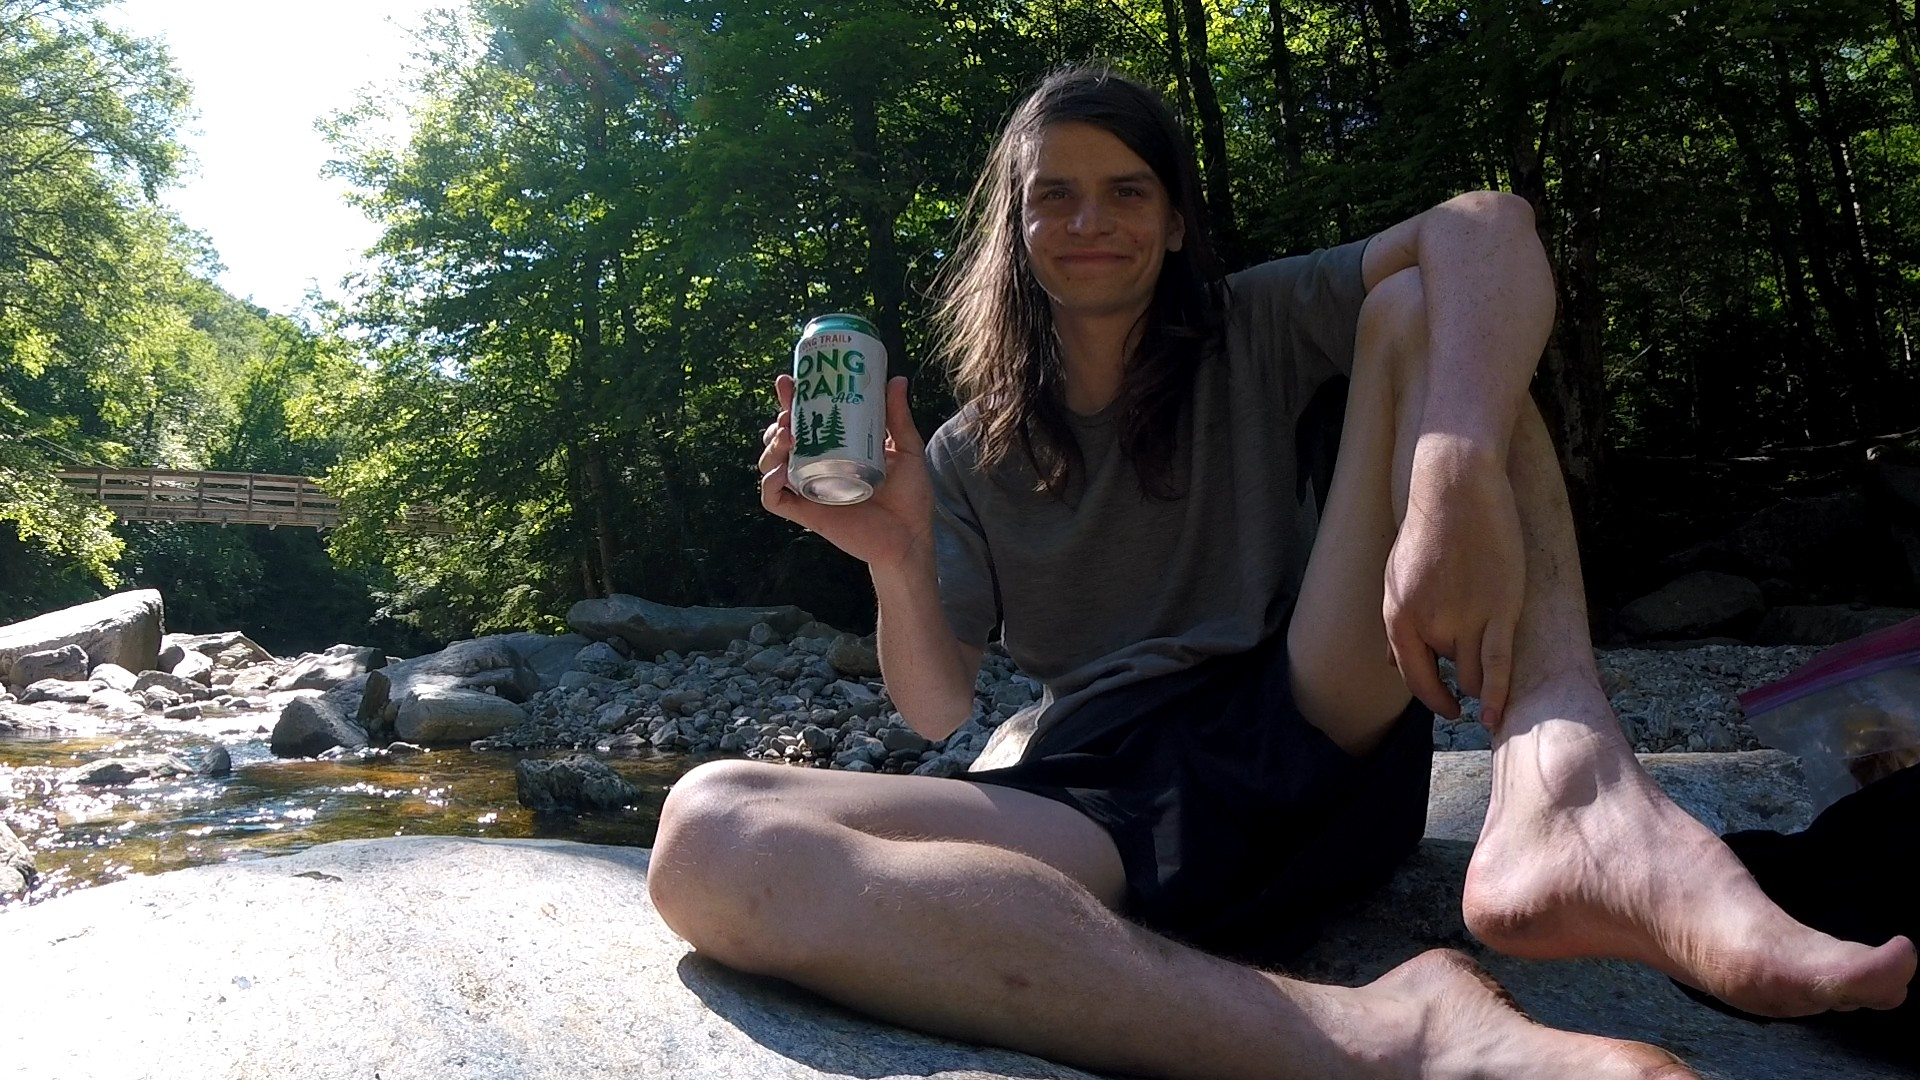 Sitting on a rock holding a can of Long Trail Ale